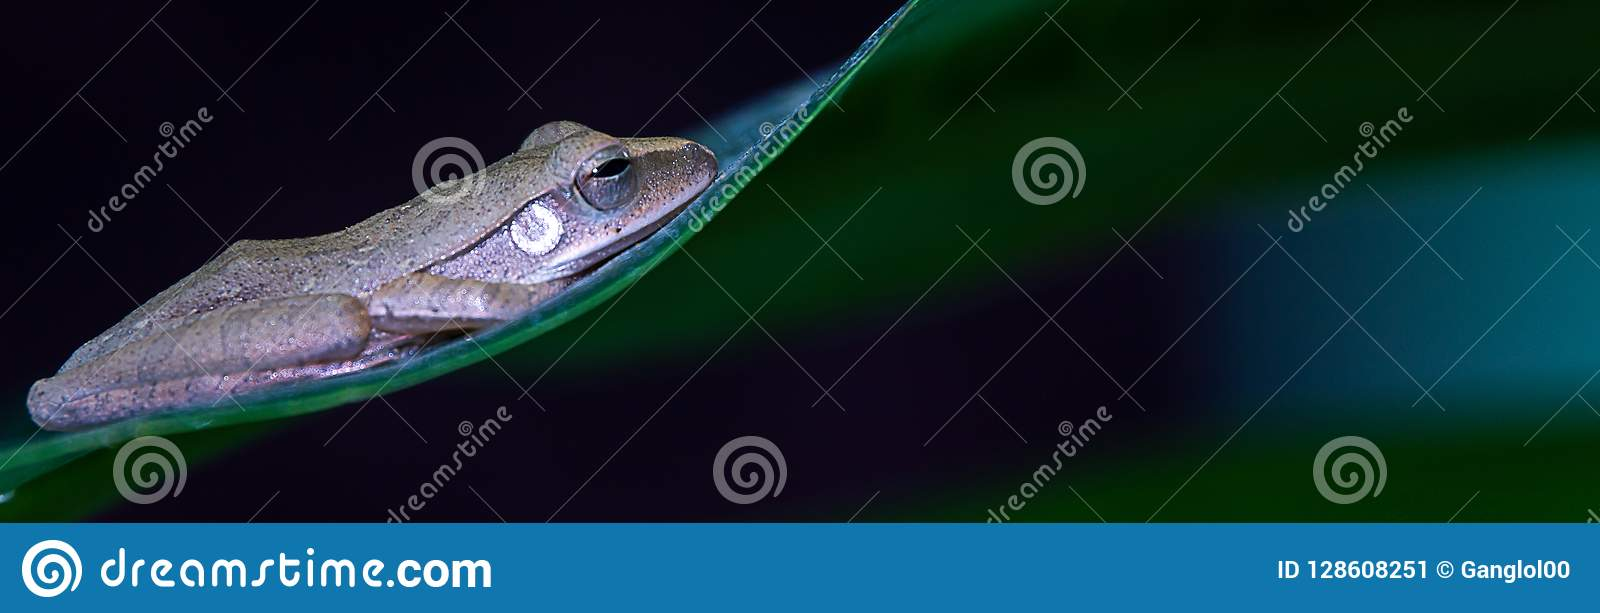 banner background,Frog on the leaf